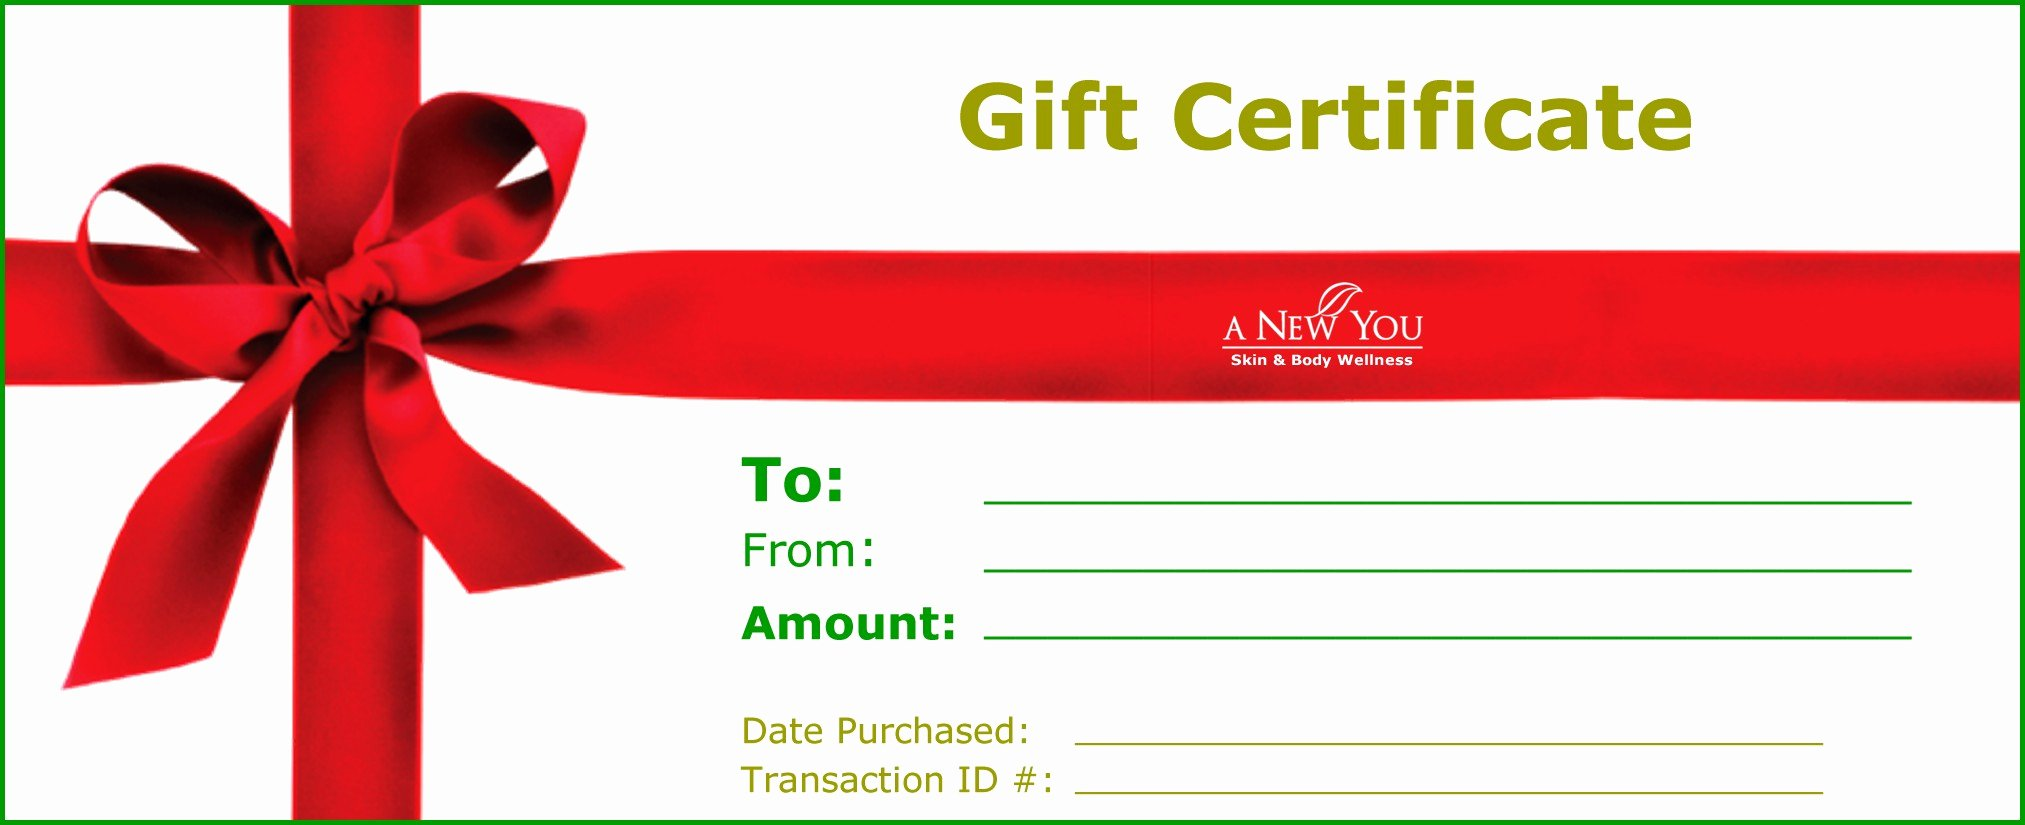 Fitness Gift Certificate Template Lovely 18 Gift Certificate Templates Excel Pdf formats